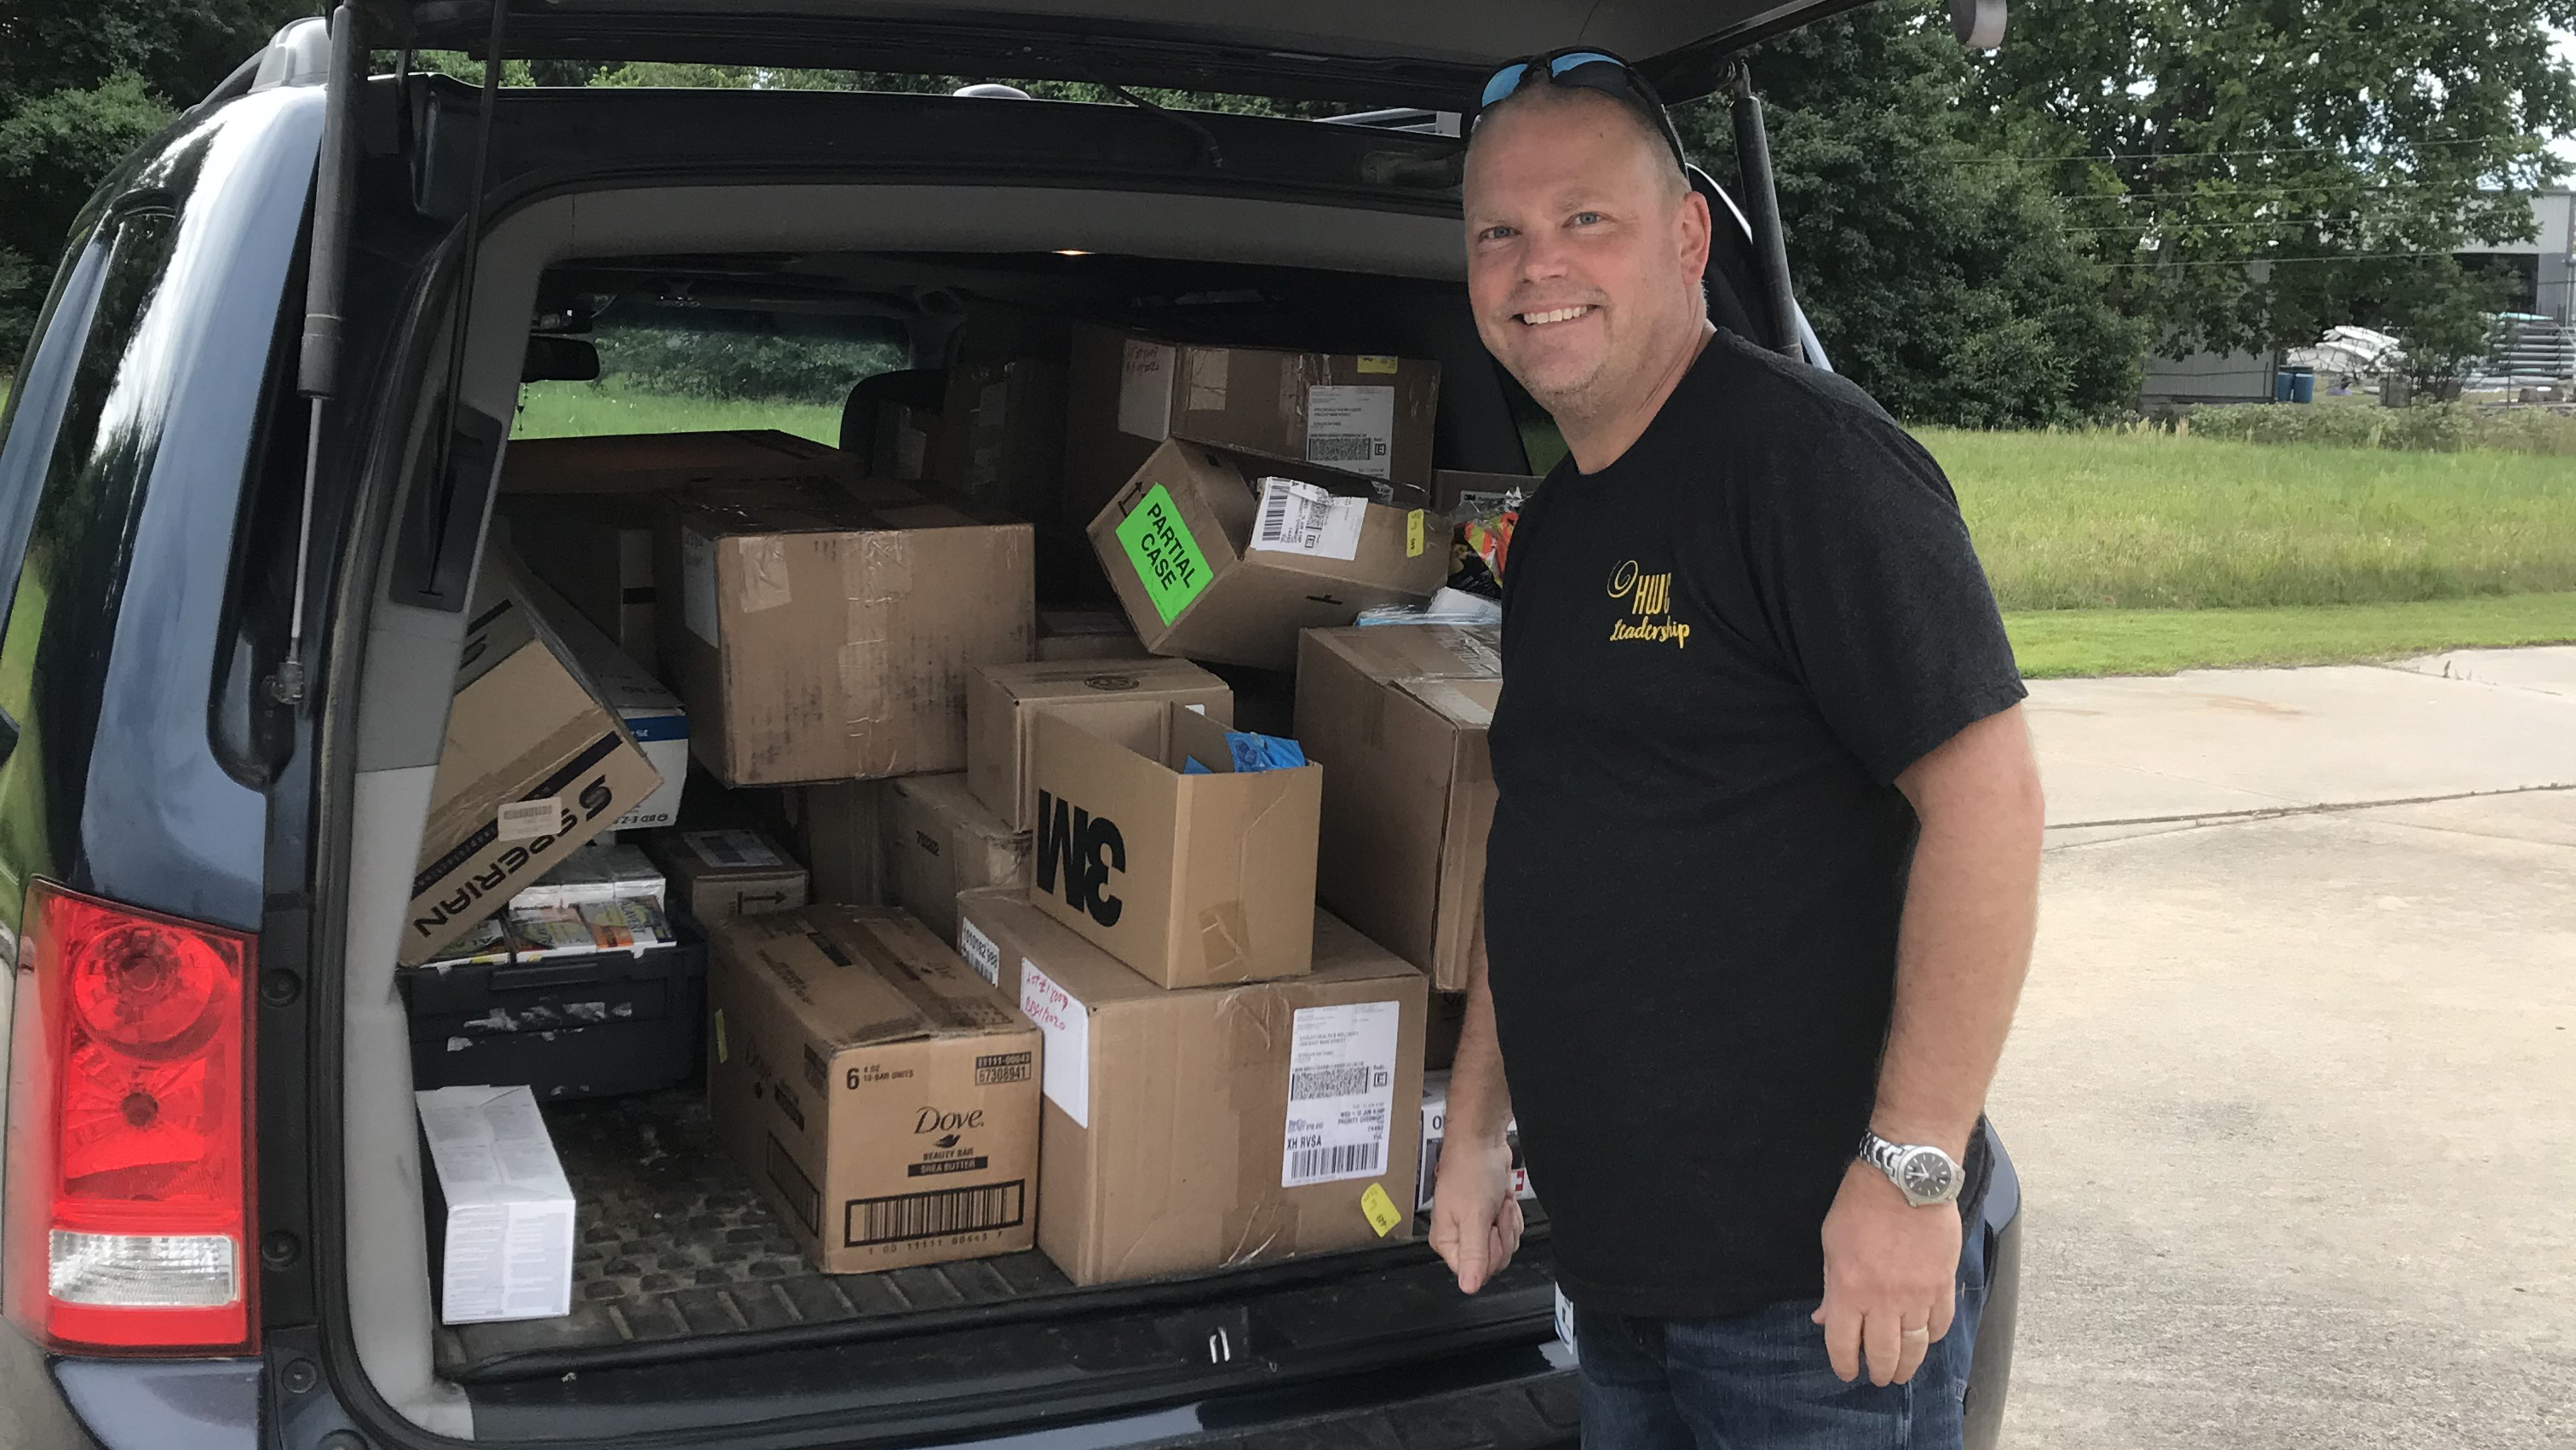 Pharmacist Byron Glover packs hygiene items and protective gear for delivery into flood-impacted communities in eastern Oklahoma. Glover and others worked to vaccinate more than 100 people against tetanus so they'd be protected during clean-up efforts. (Photo courtesy of Stigler Health and Wellness)